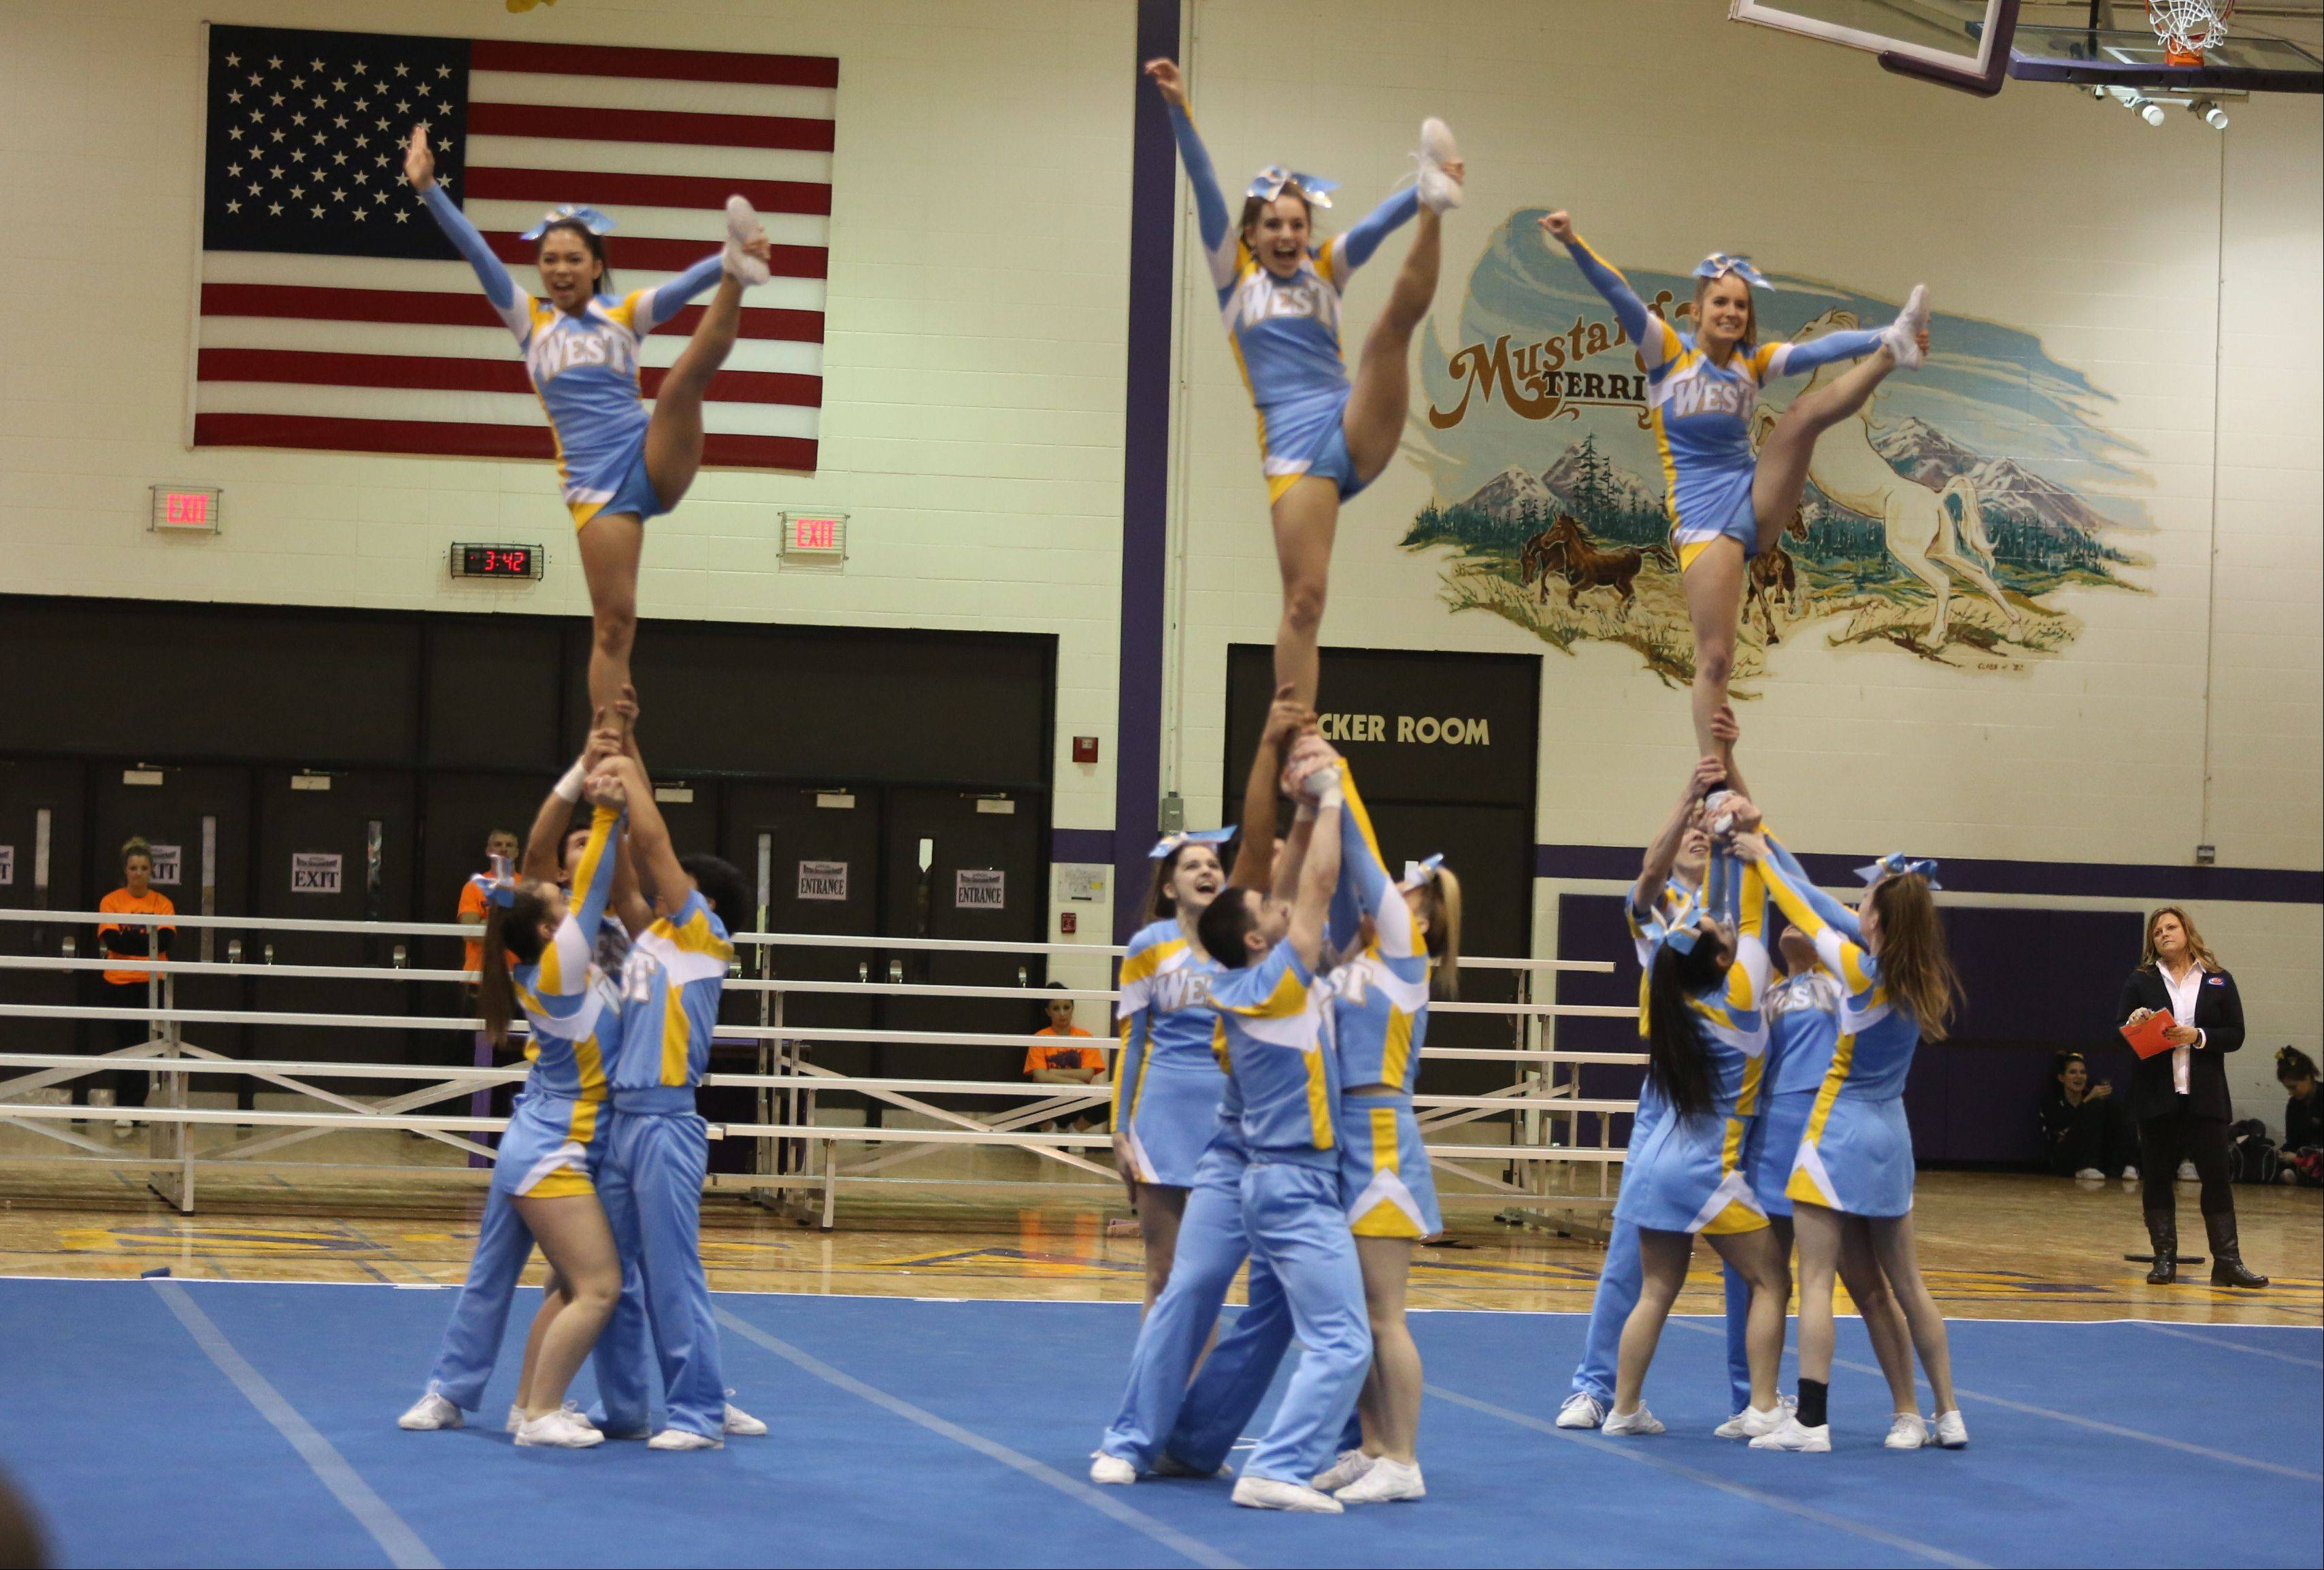 Maine West High School competes in the Coed Team category during the IHSA Cheerleading Sectional Sunday hosted by Rolling Meadows High School.